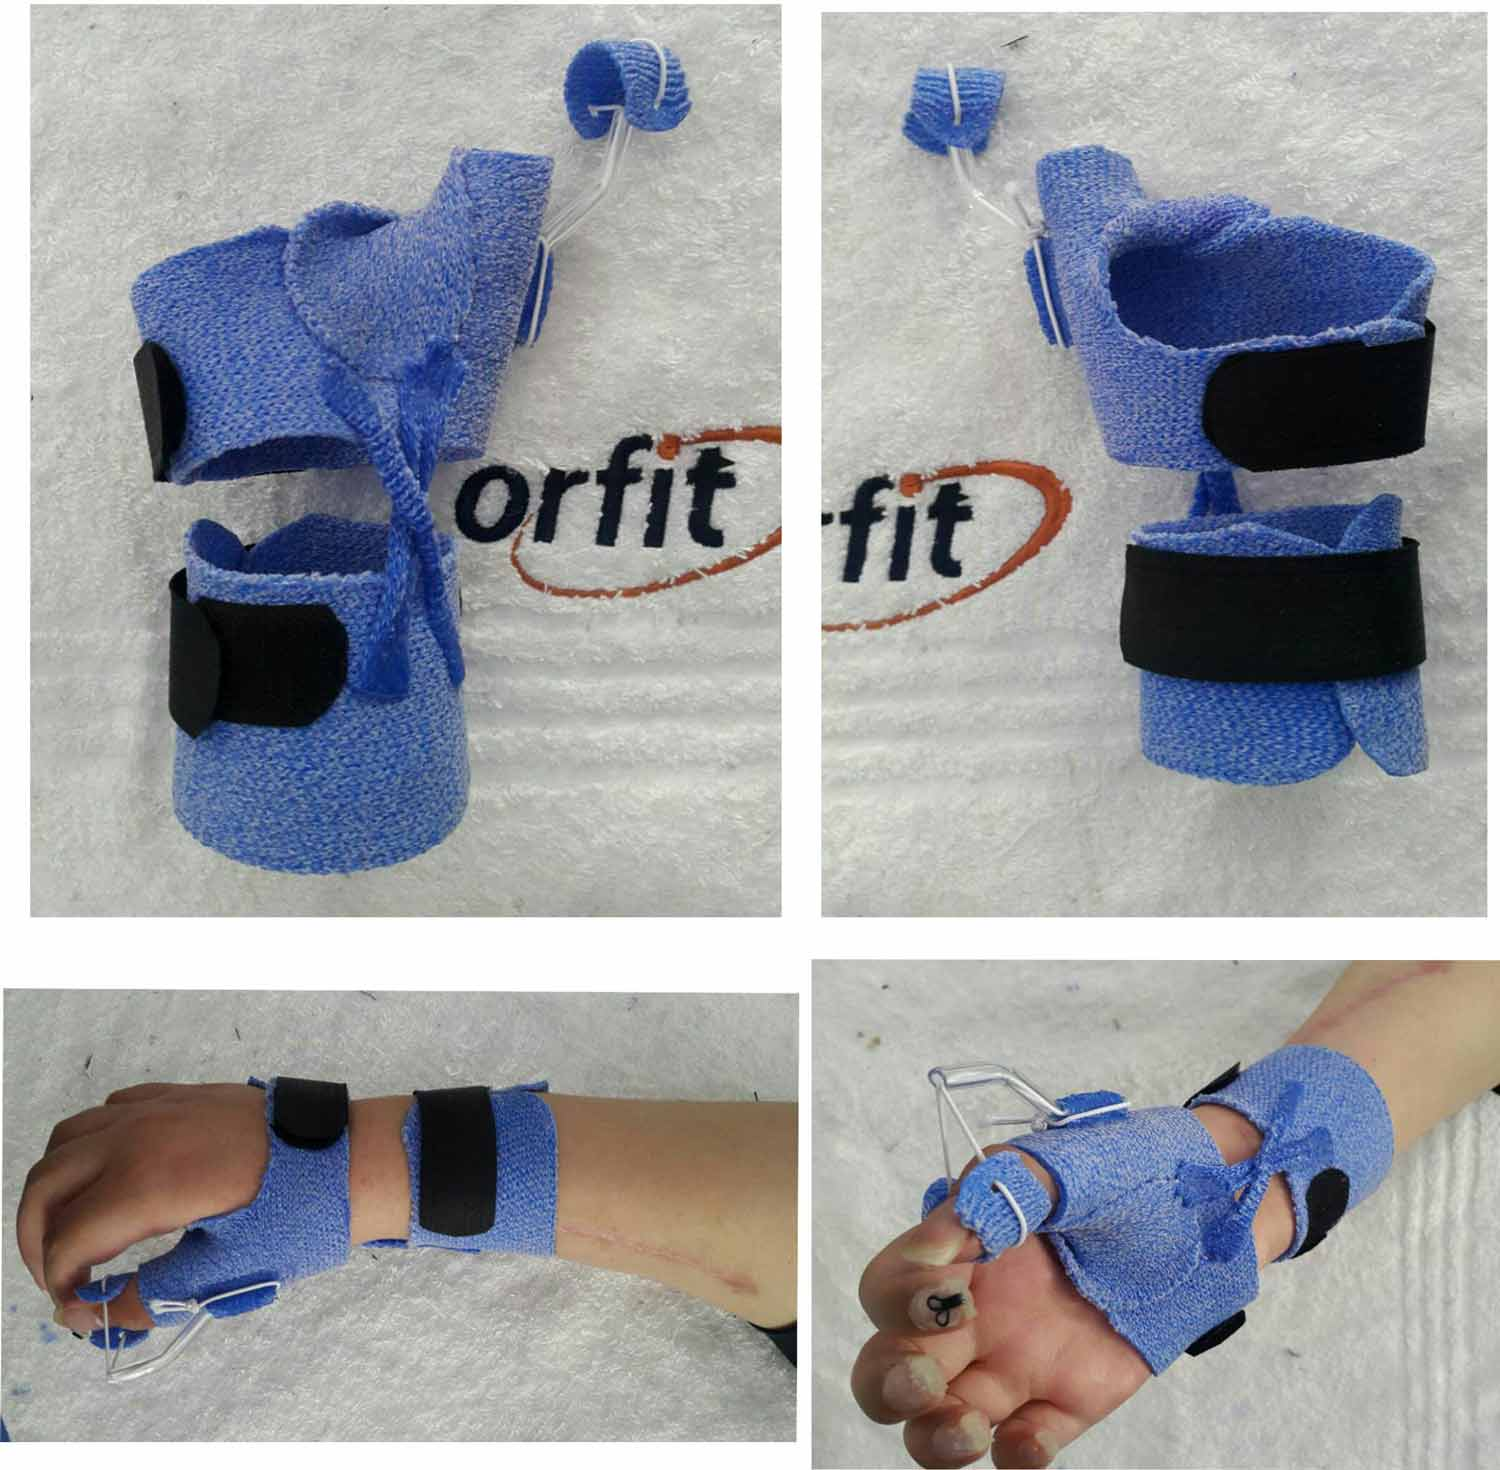 6 Orthotic Fabrication Ideas With Orficast More